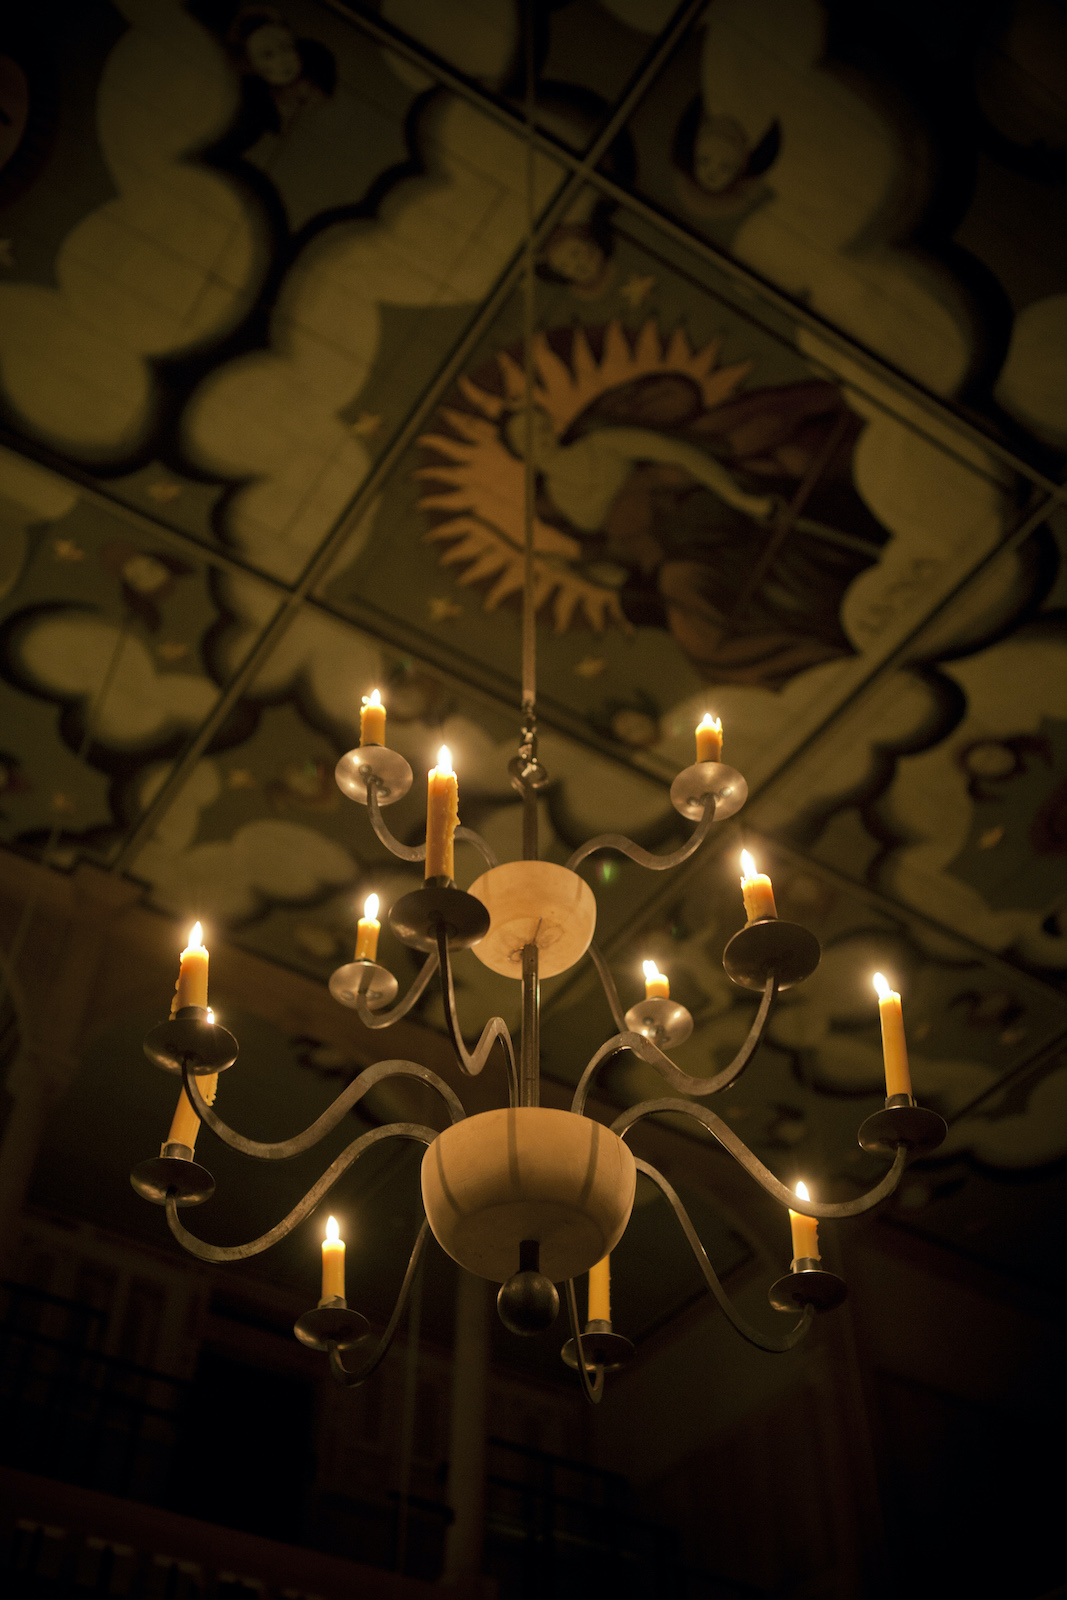 A lit candelabra hangs from a decorated ceiling.